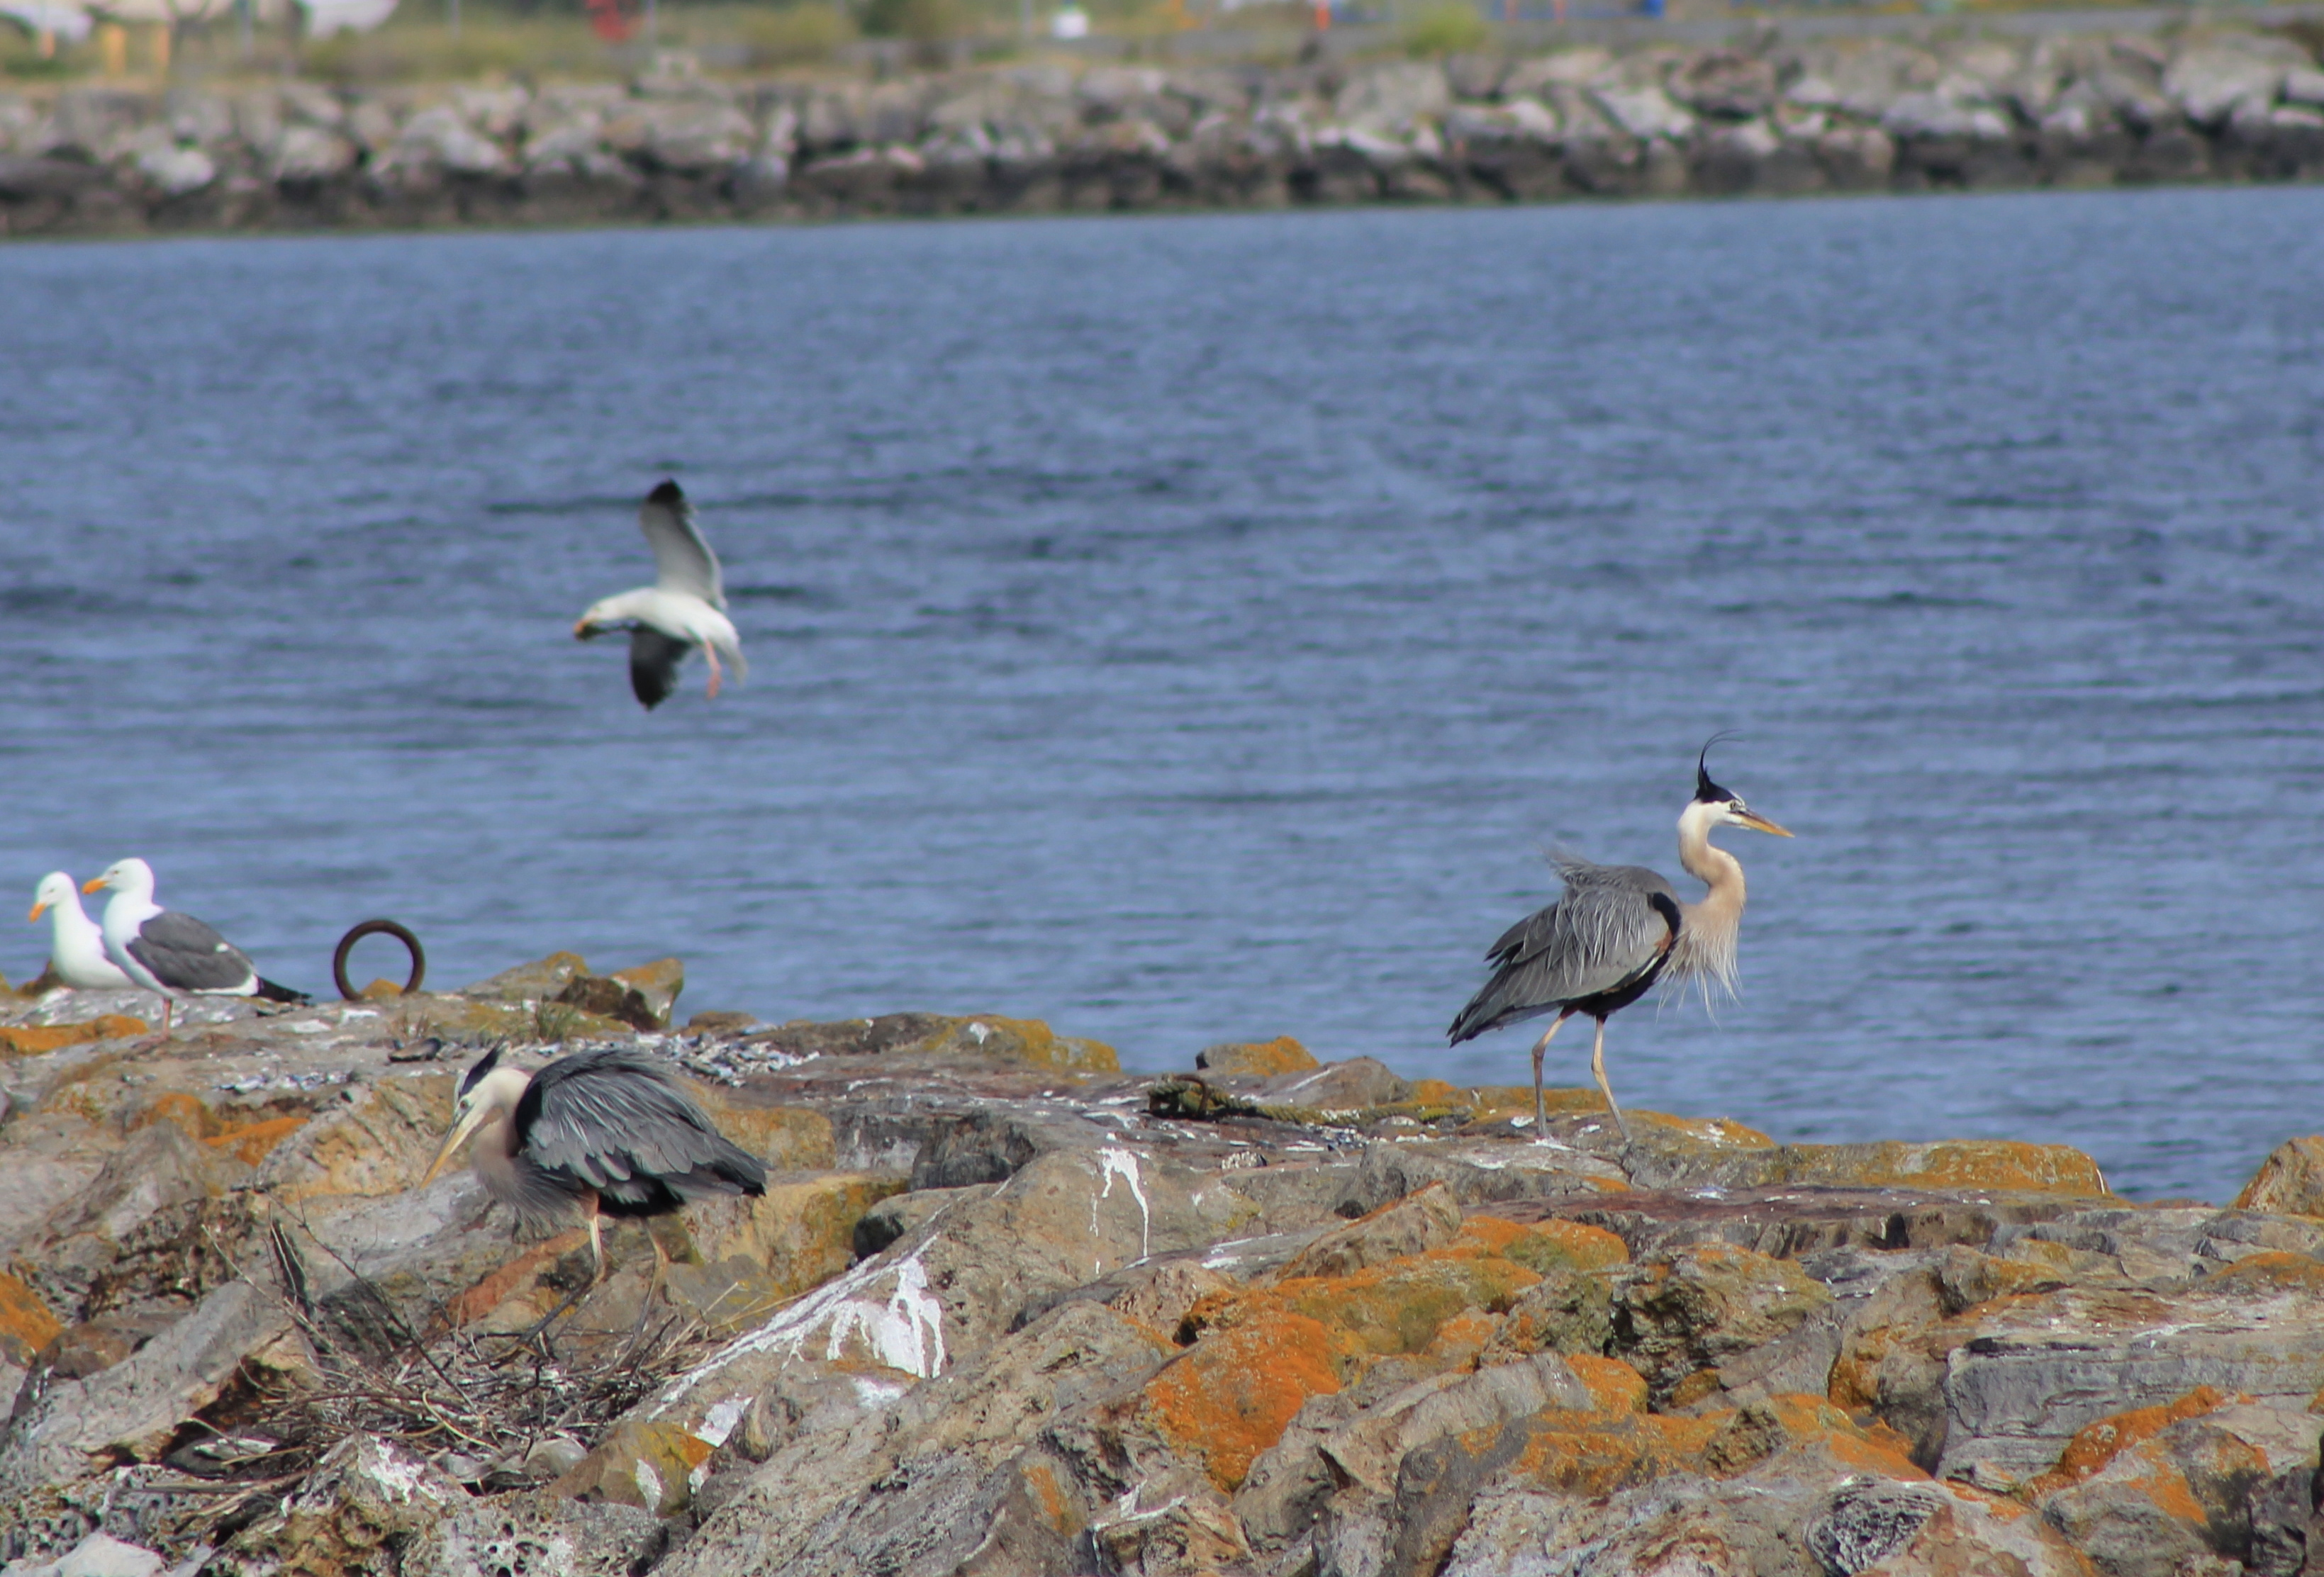 Eastern jetty of Seaplane Lagoon with Great Blue Herons with nest and landing gull.  Heron is directly above proposed tidal marsh featured on map above.  West shore of Seaplane Lagoon in background.